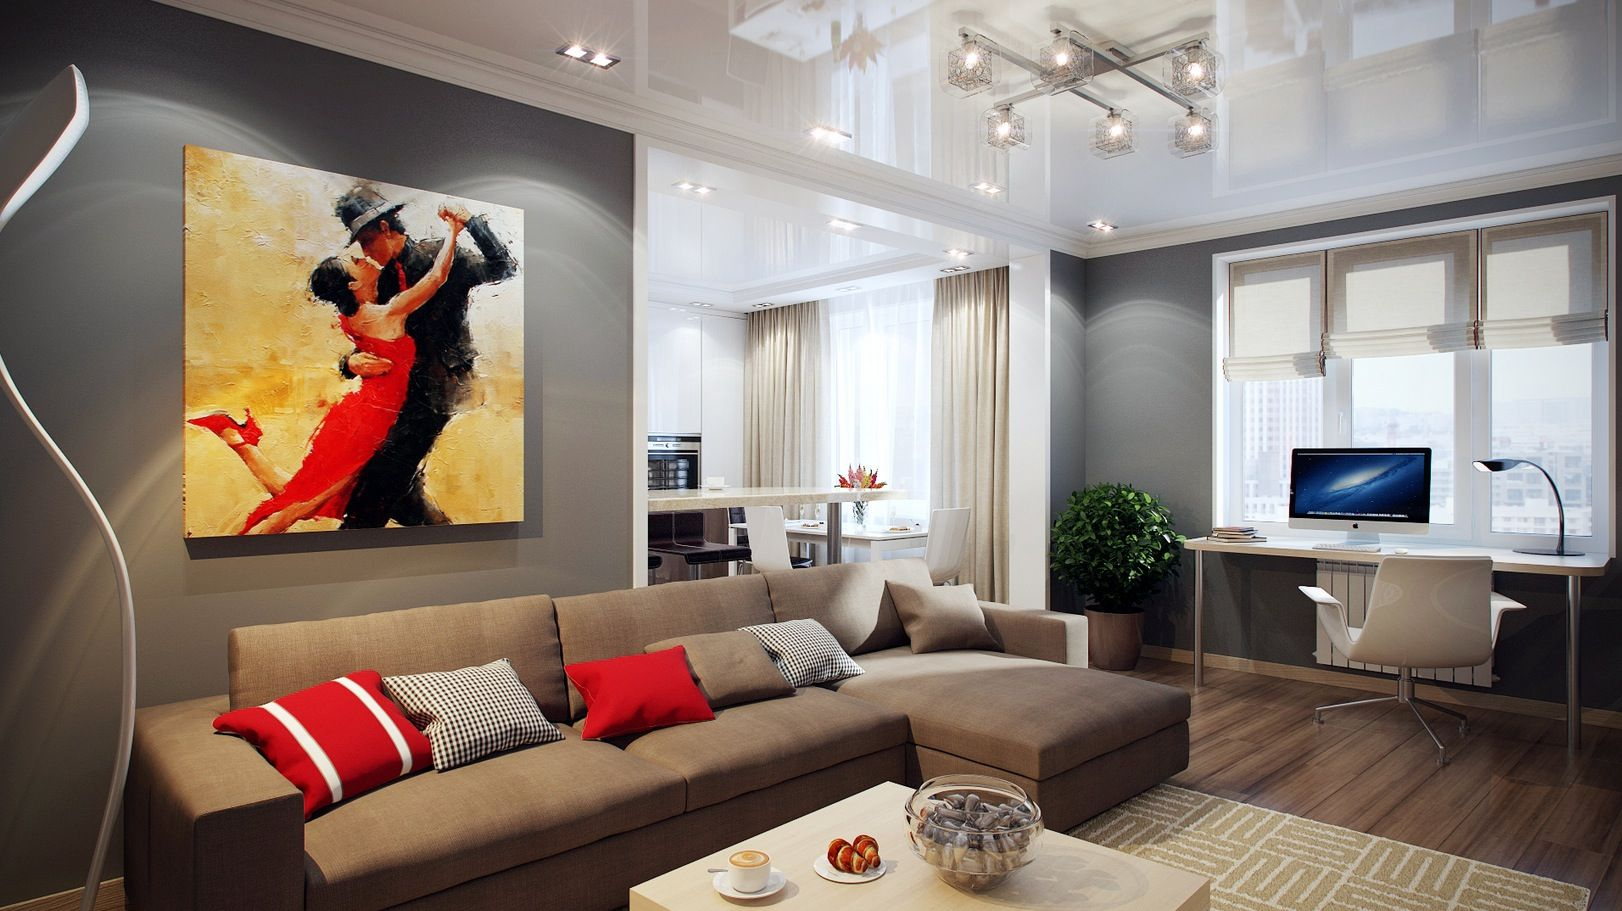 Decorating With Gray Living Room Remodel Ideas Walls Fitted Beige Paint Colors Brown Sofa Table Picture Wooden Floor And Tv Swivel Chairs A